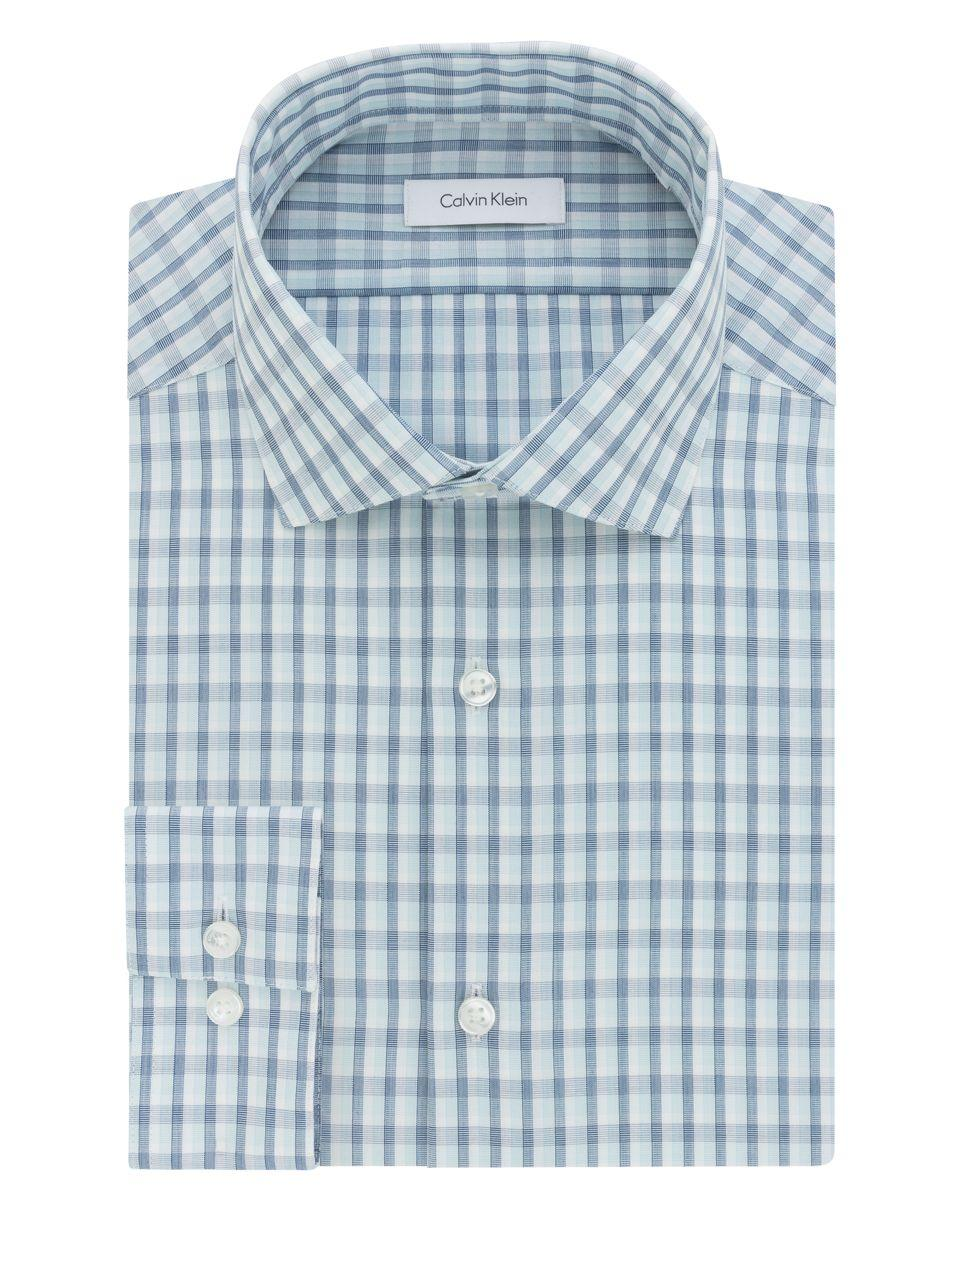 Calvin klein men 39 s steel classic regular fit performance for 20 34 35 dress shirts